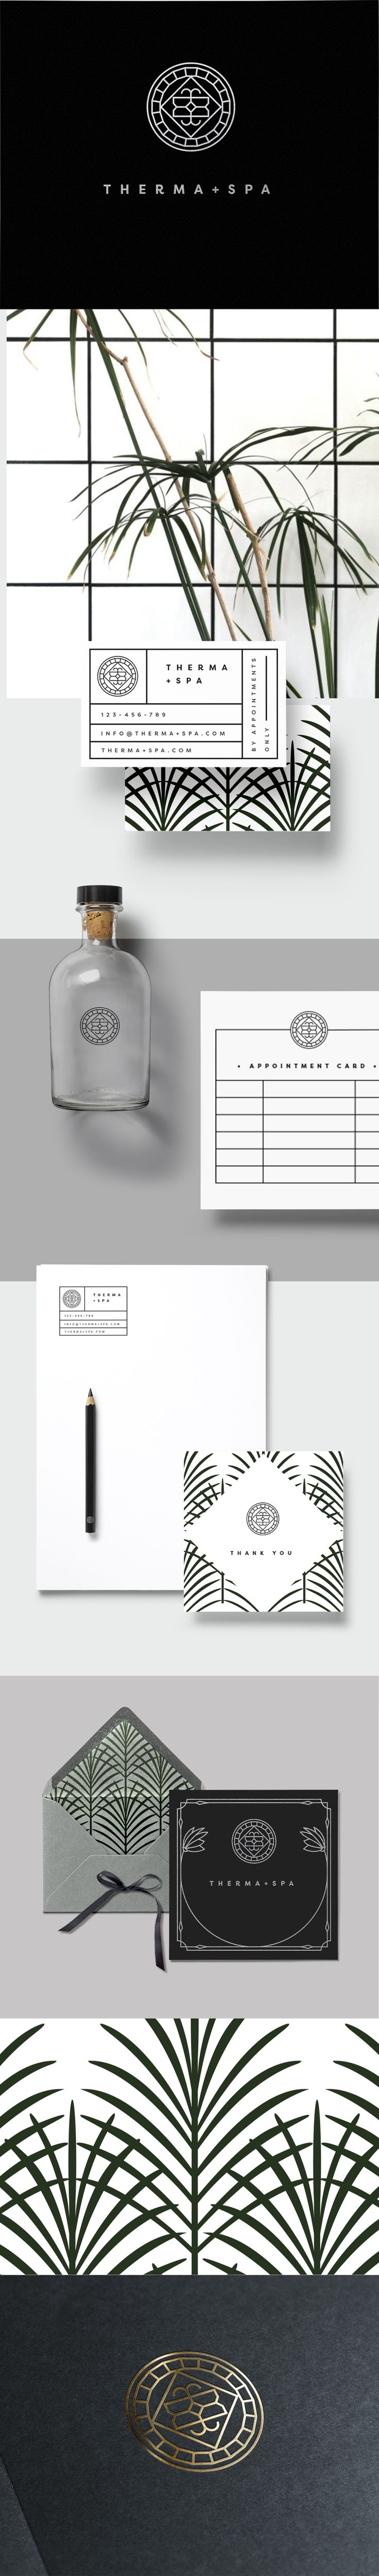 Minimalist + Edgy Branding + logo- available. Perfect for a spa, beauty or hair salons- Loolaadesigns.com